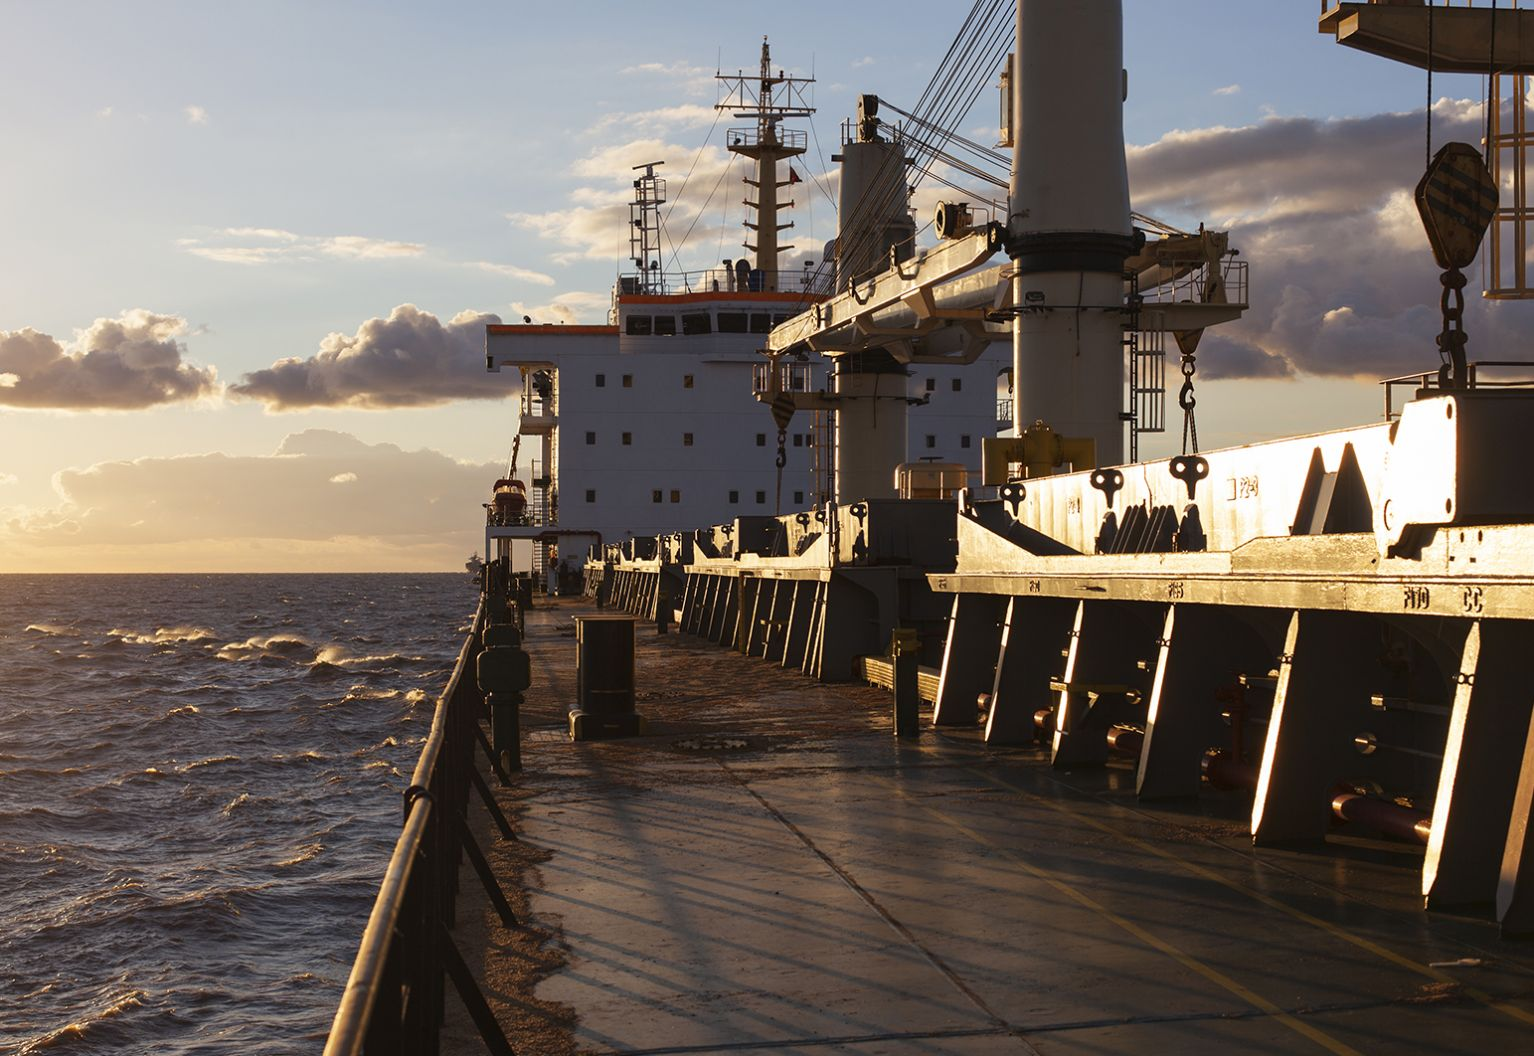 View of deck of a bulk carrier.